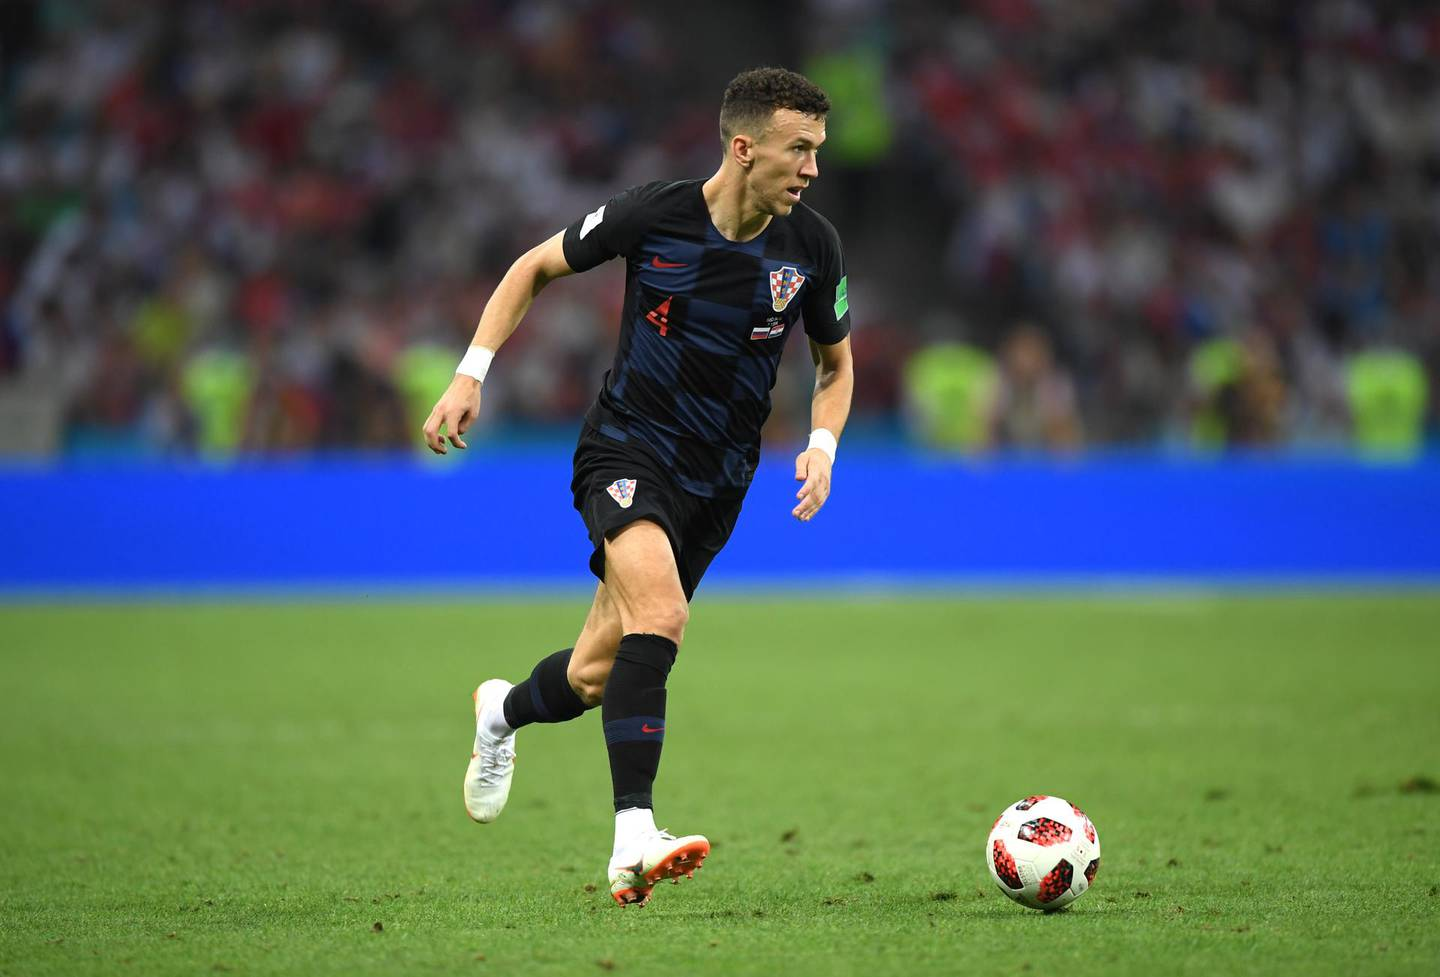 SOCHI, RUSSIA - JULY 07:  Ivan Perisic of Croatia runs with the ball during the 2018 FIFA World Cup Russia Quarter Final match between Russia and Croatia at Fisht Stadium on July 7, 2018 in Sochi, Russia.  (Photo by Shaun Botterill/Getty Images)